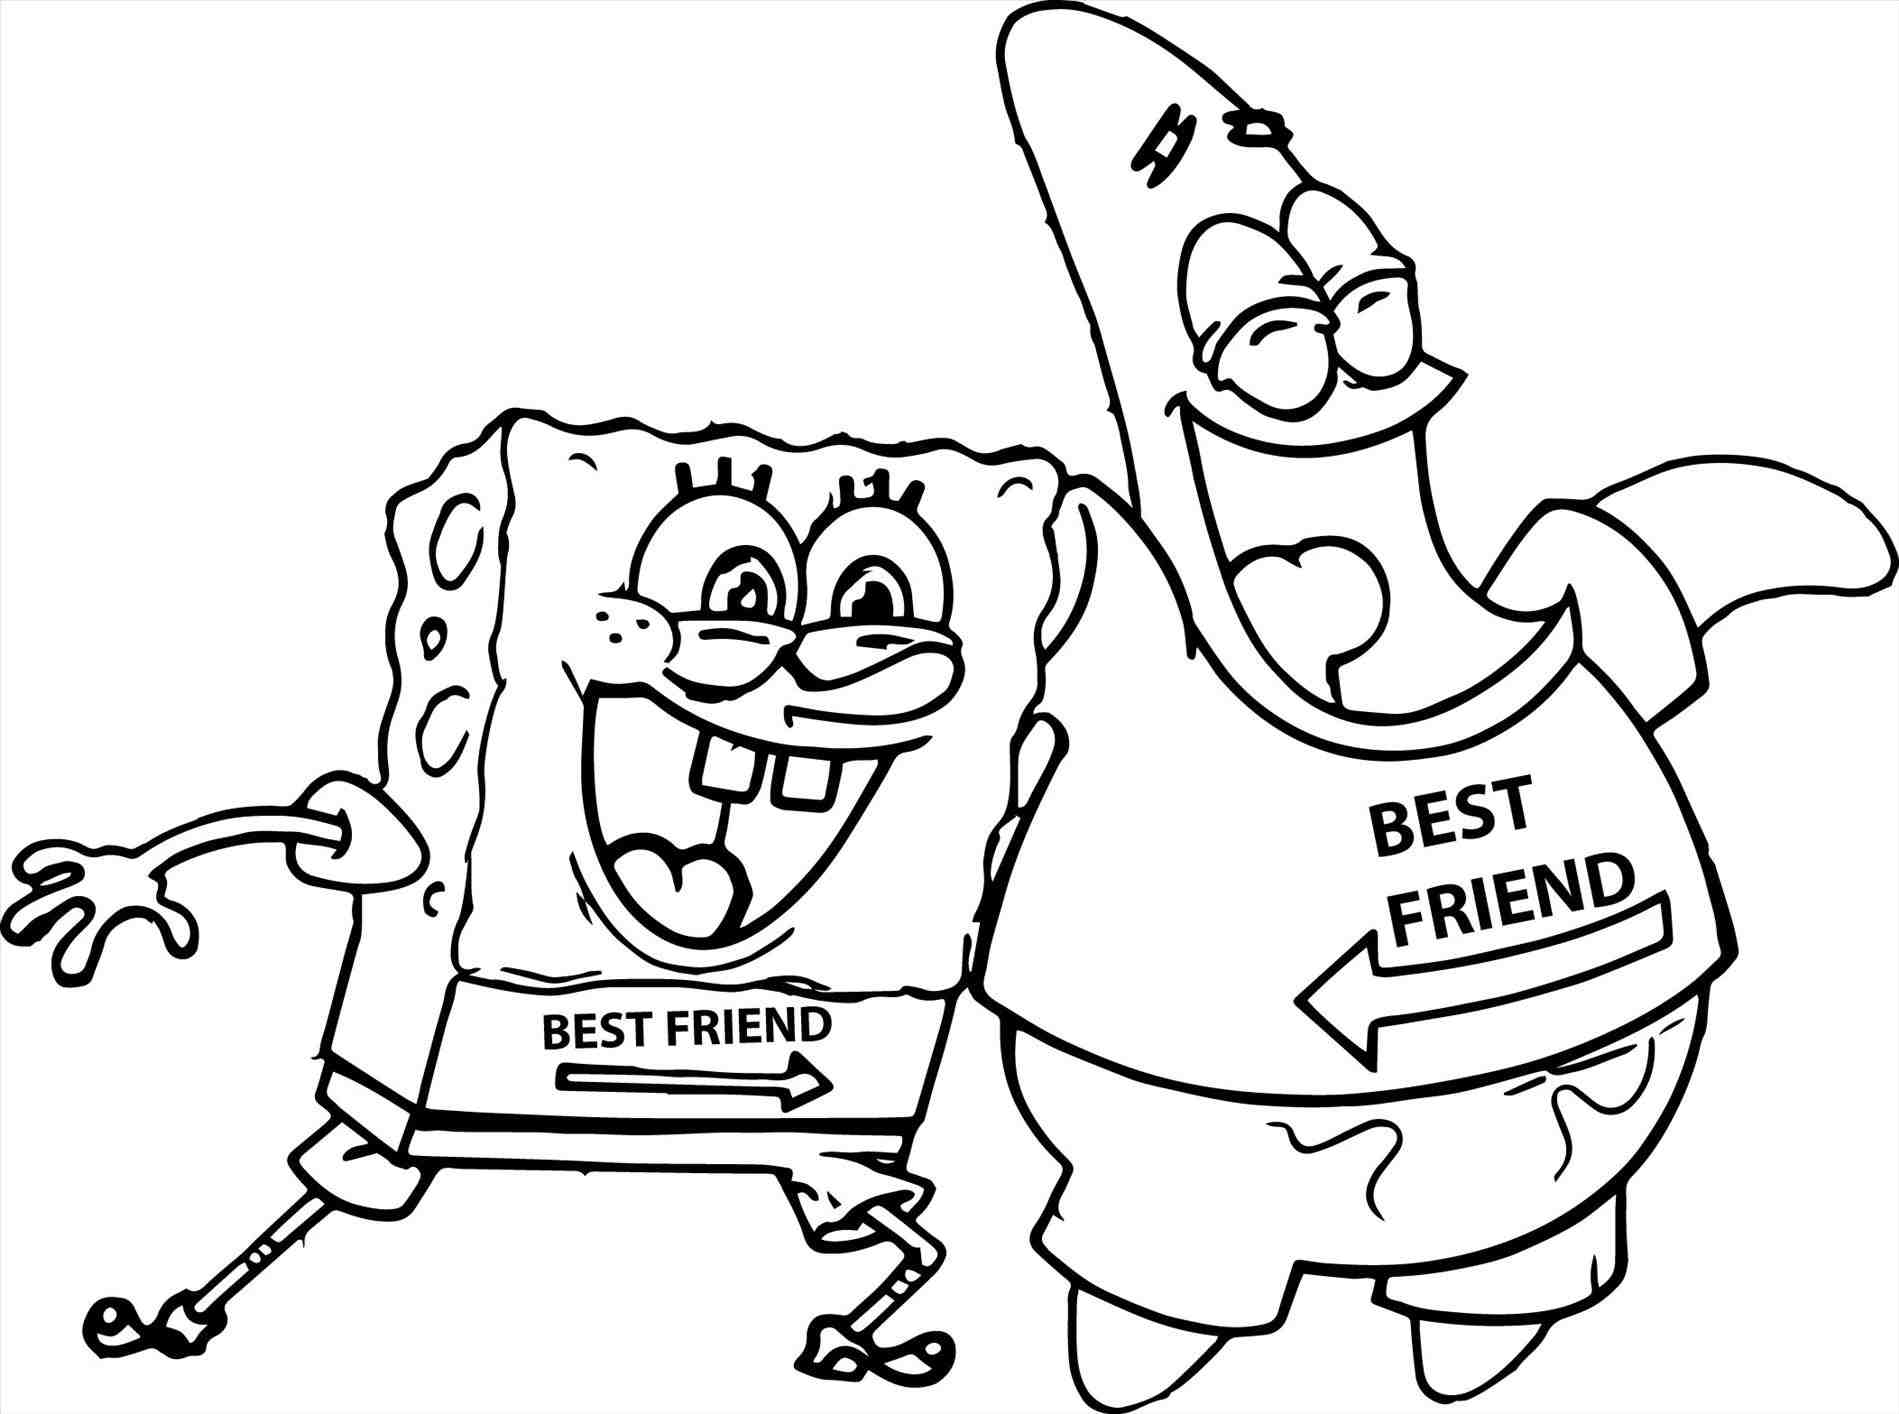 1899x1414 The Images Collection Of Ship Best Friend Drawings For Kids